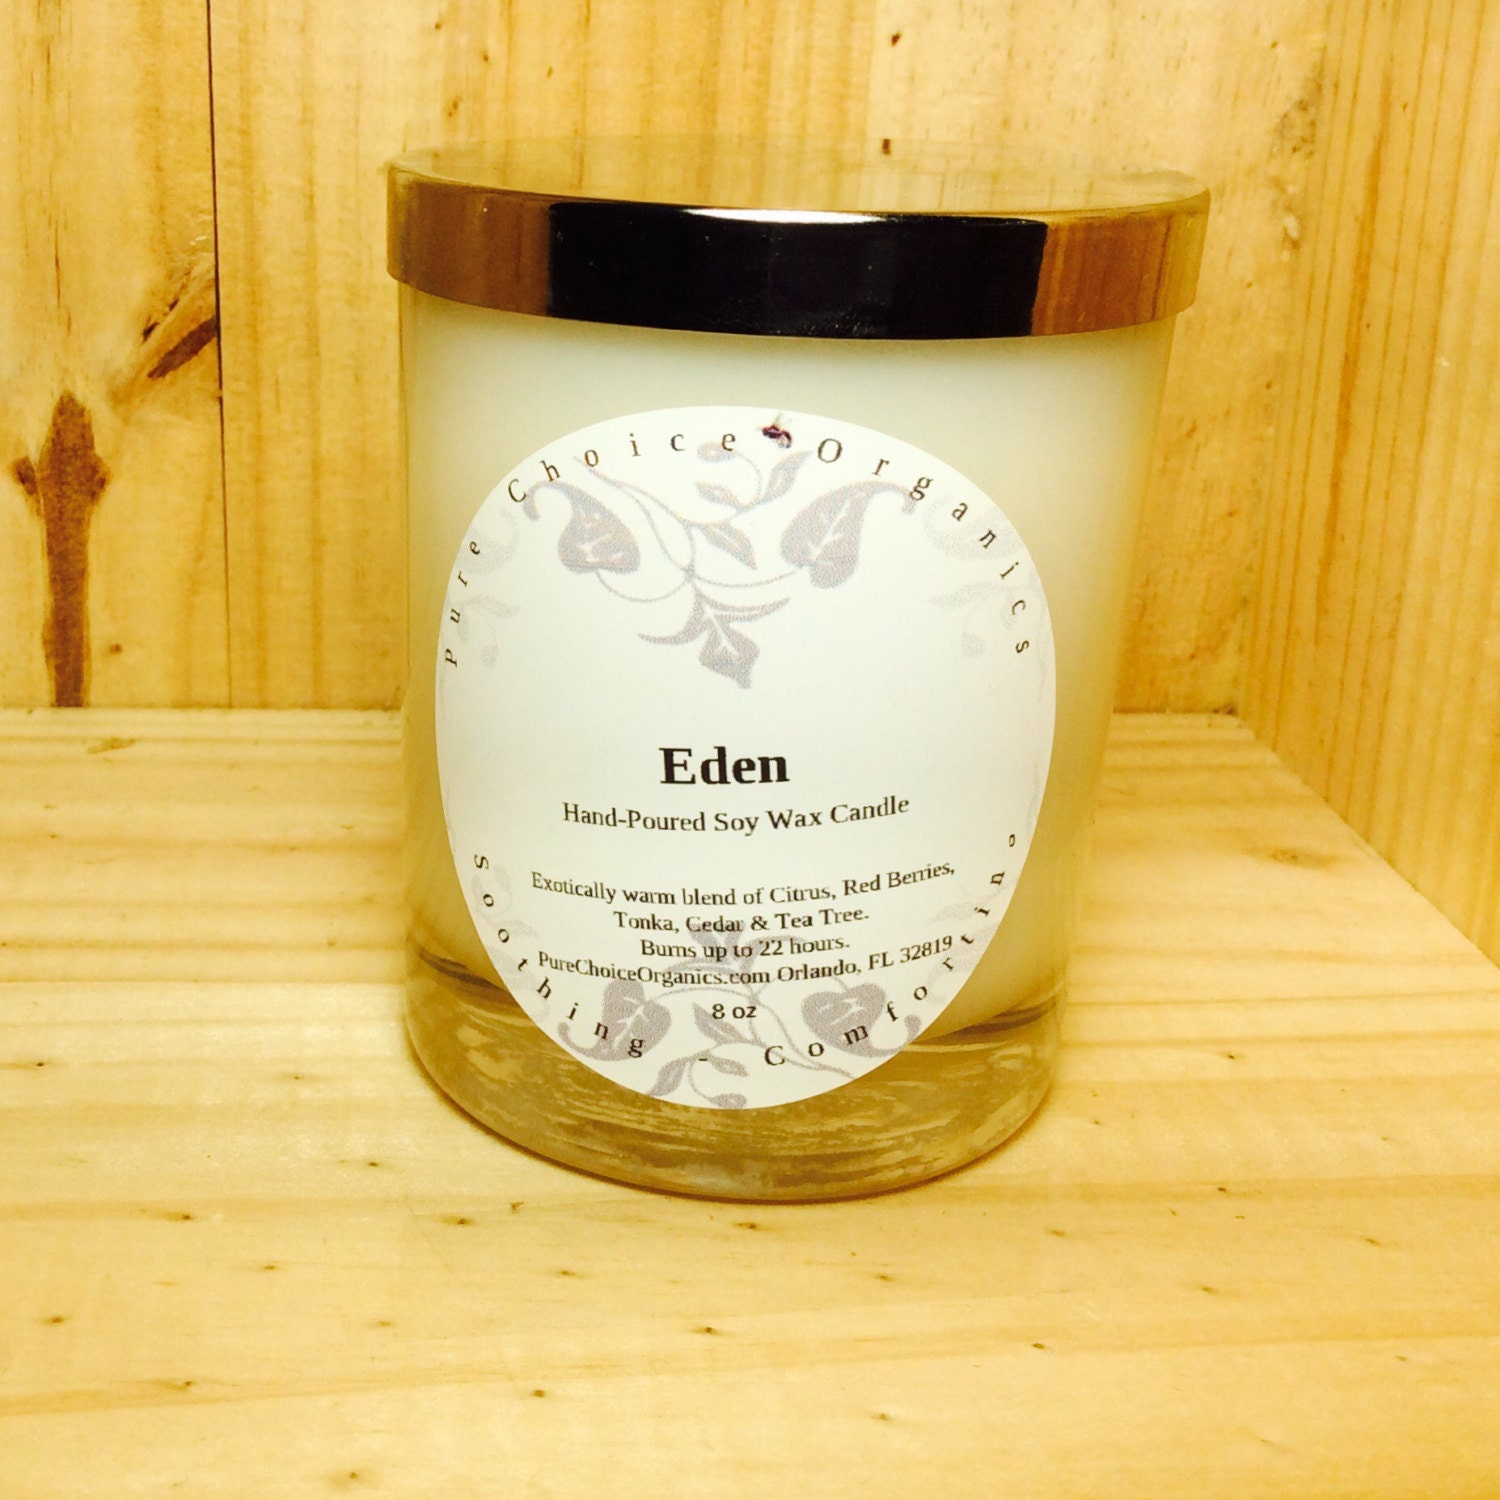 Eden Soy Wax Candles Holiday Gift